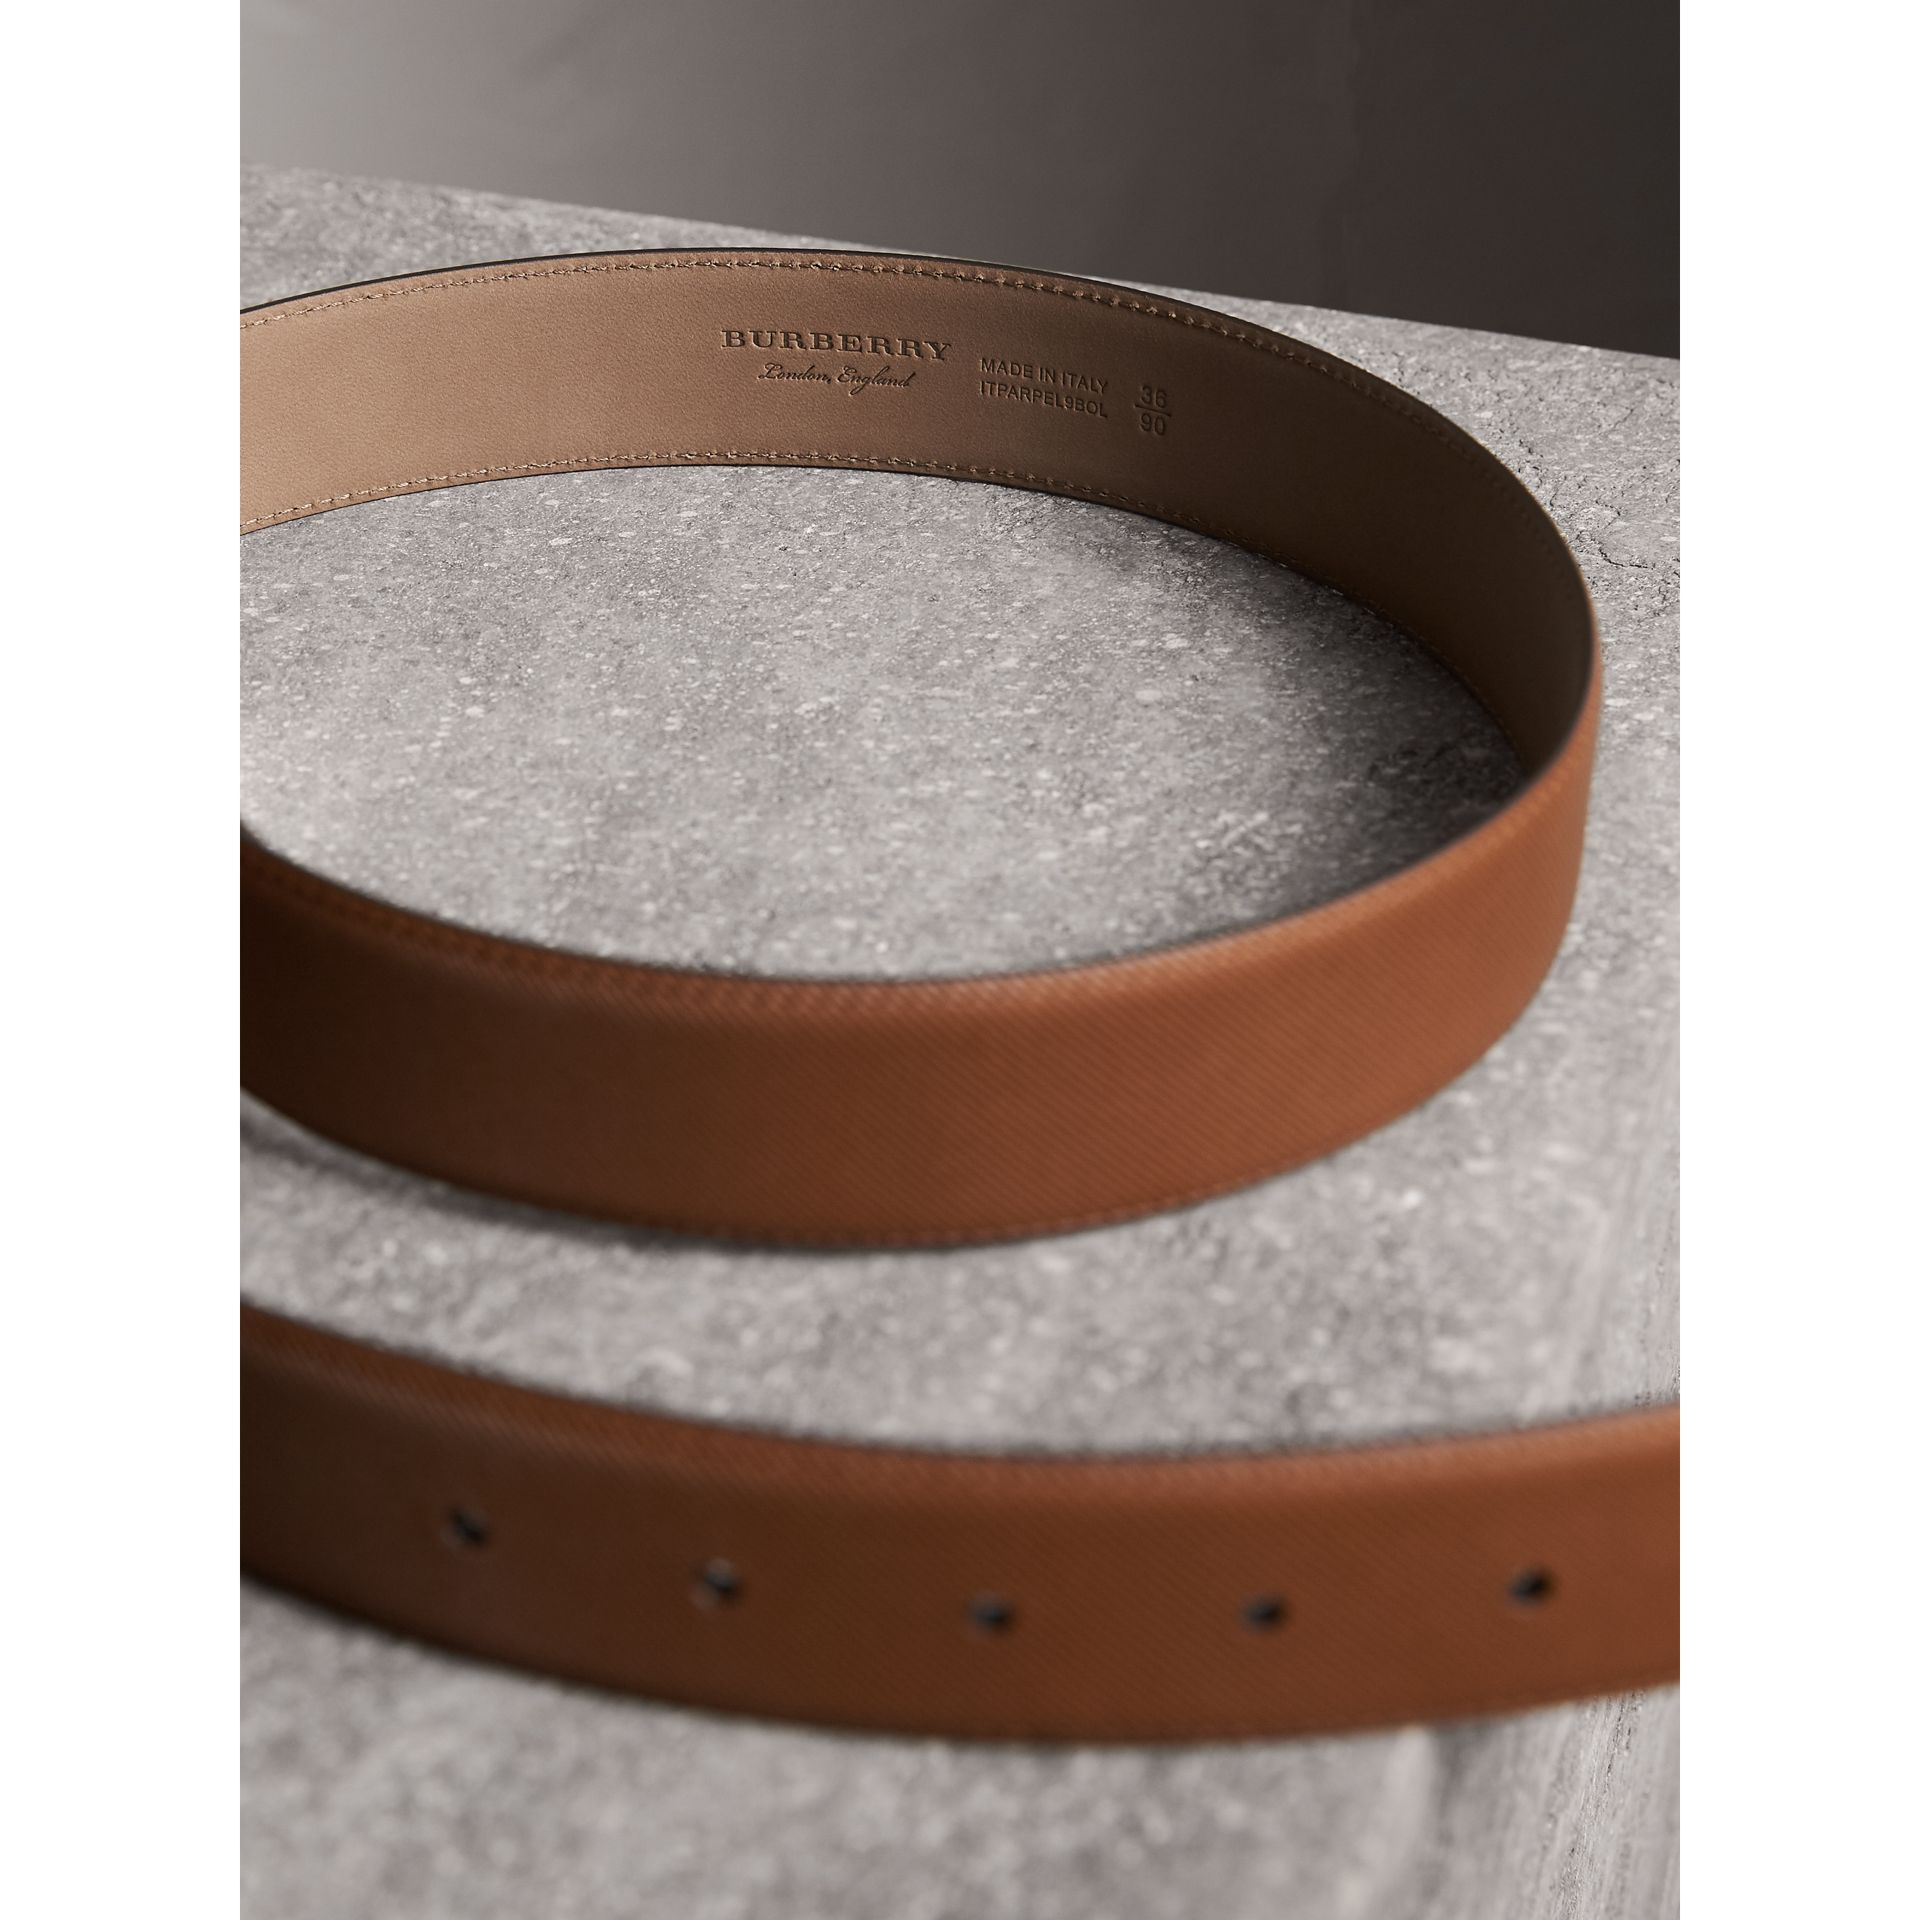 Brass Plaque Buckle Trench Leather Belt in Tan - Men | Burberry - gallery image 3